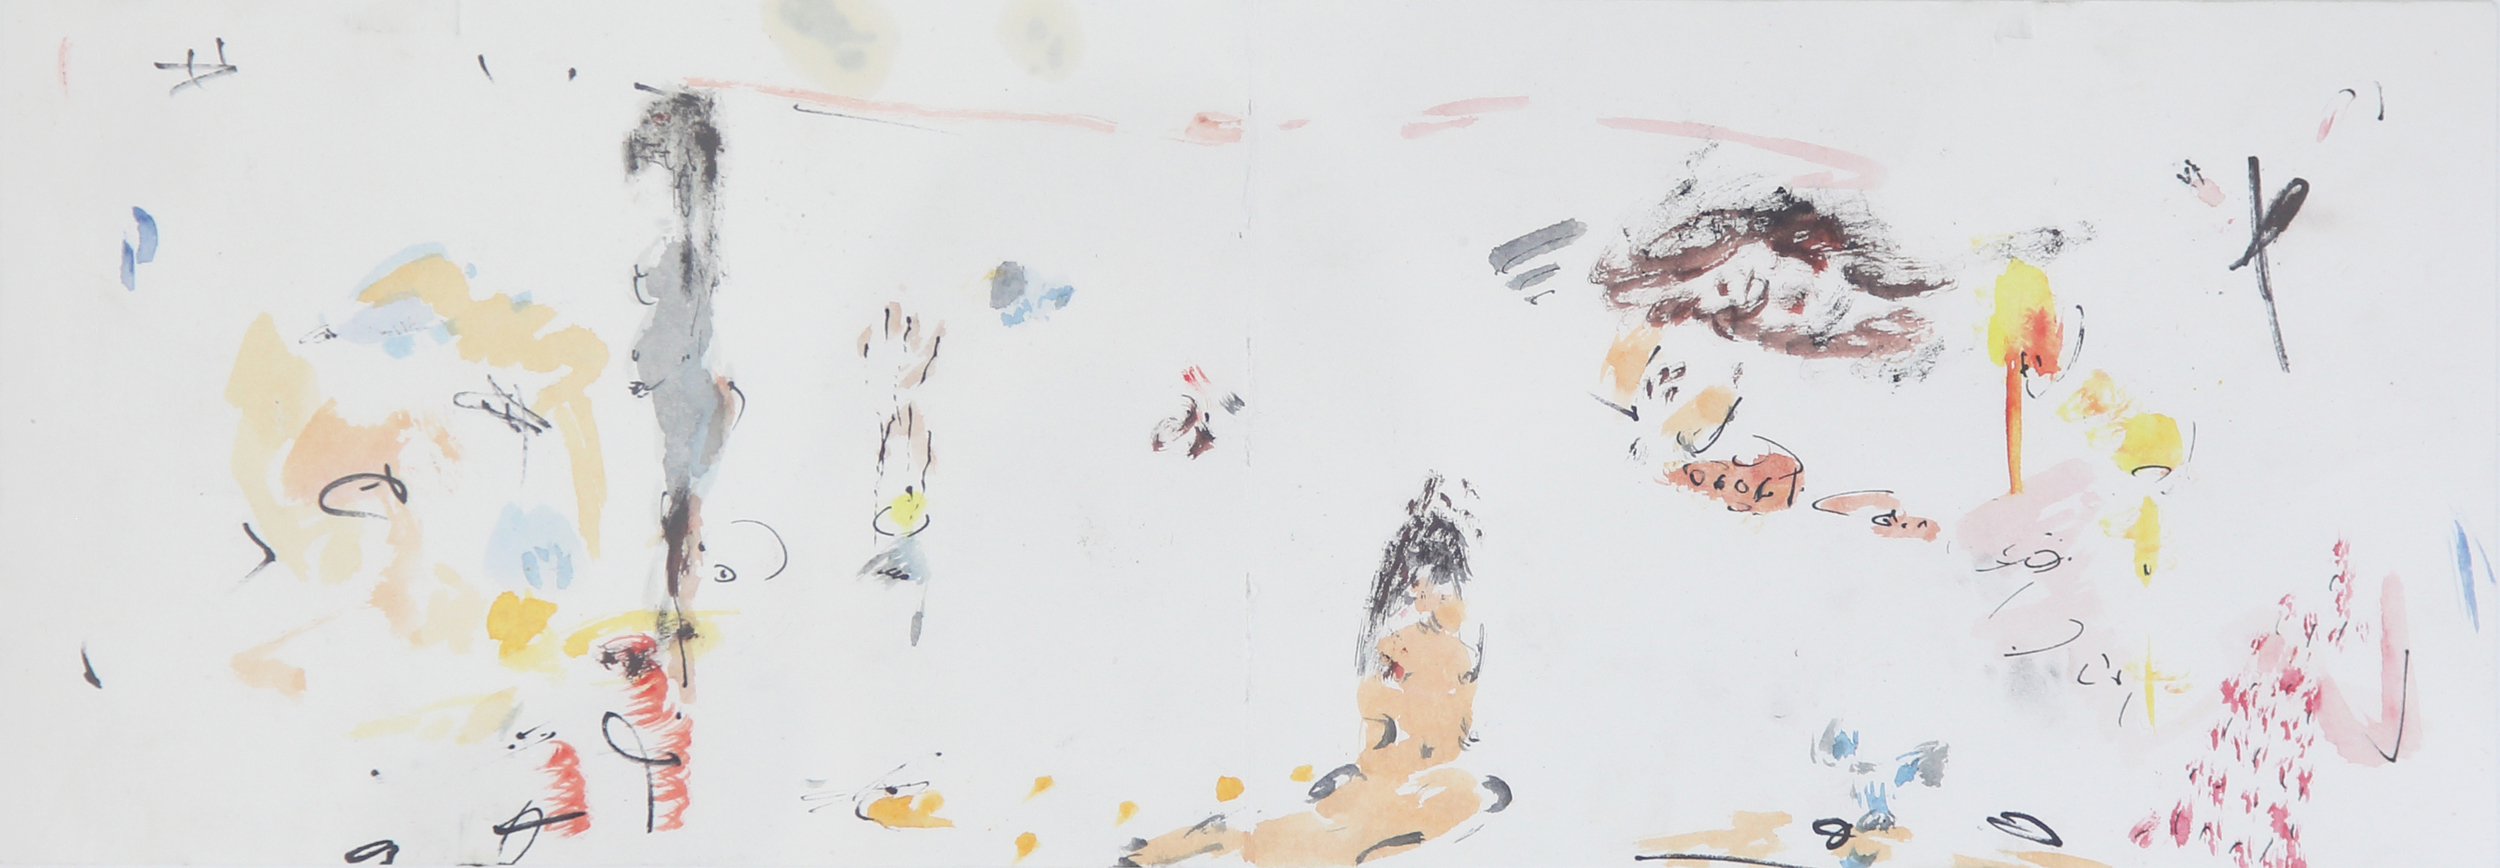 Shen Han 沈翰 No title, 2016 Watercolor on paper 39x13.5 cm